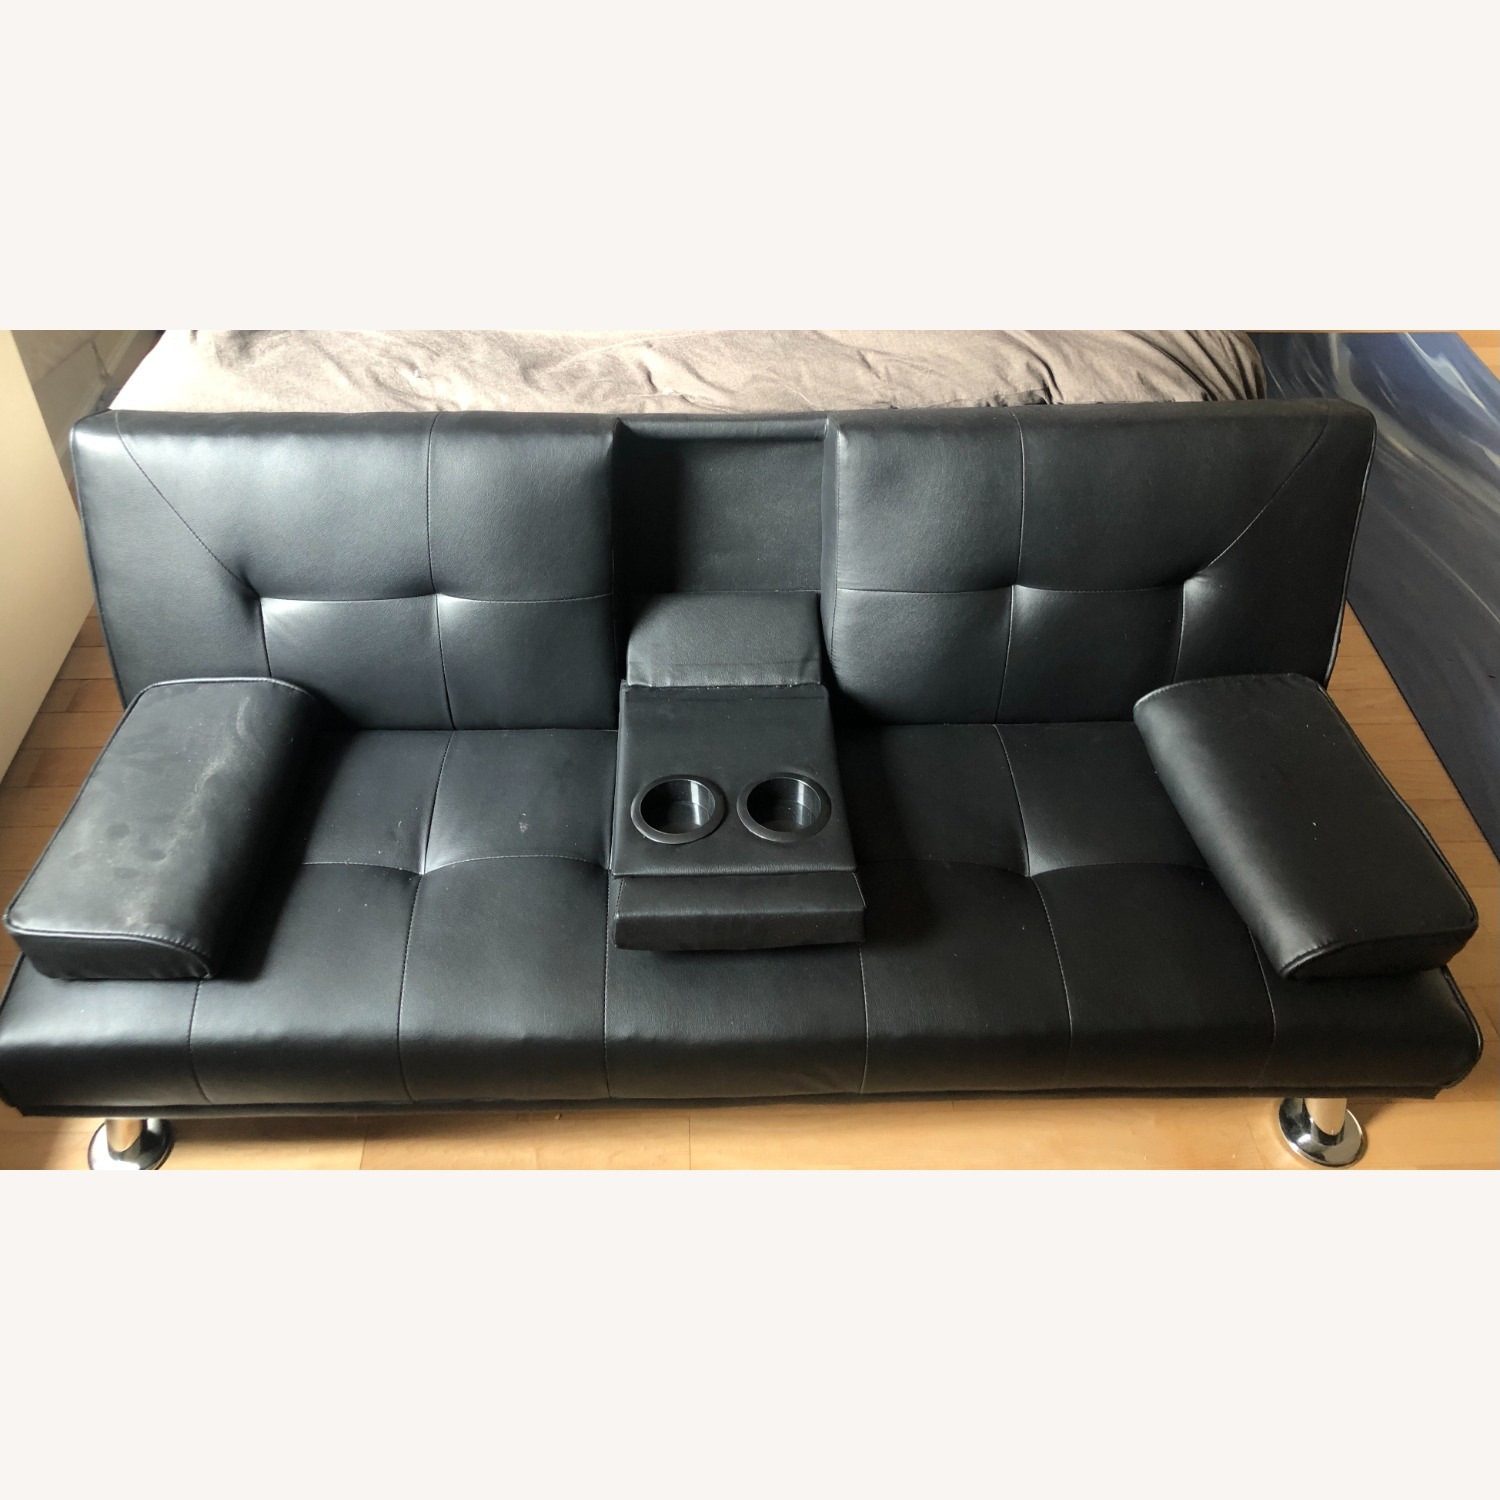 Wayfair Faux Leather Sofa Bed - Twin - image-3